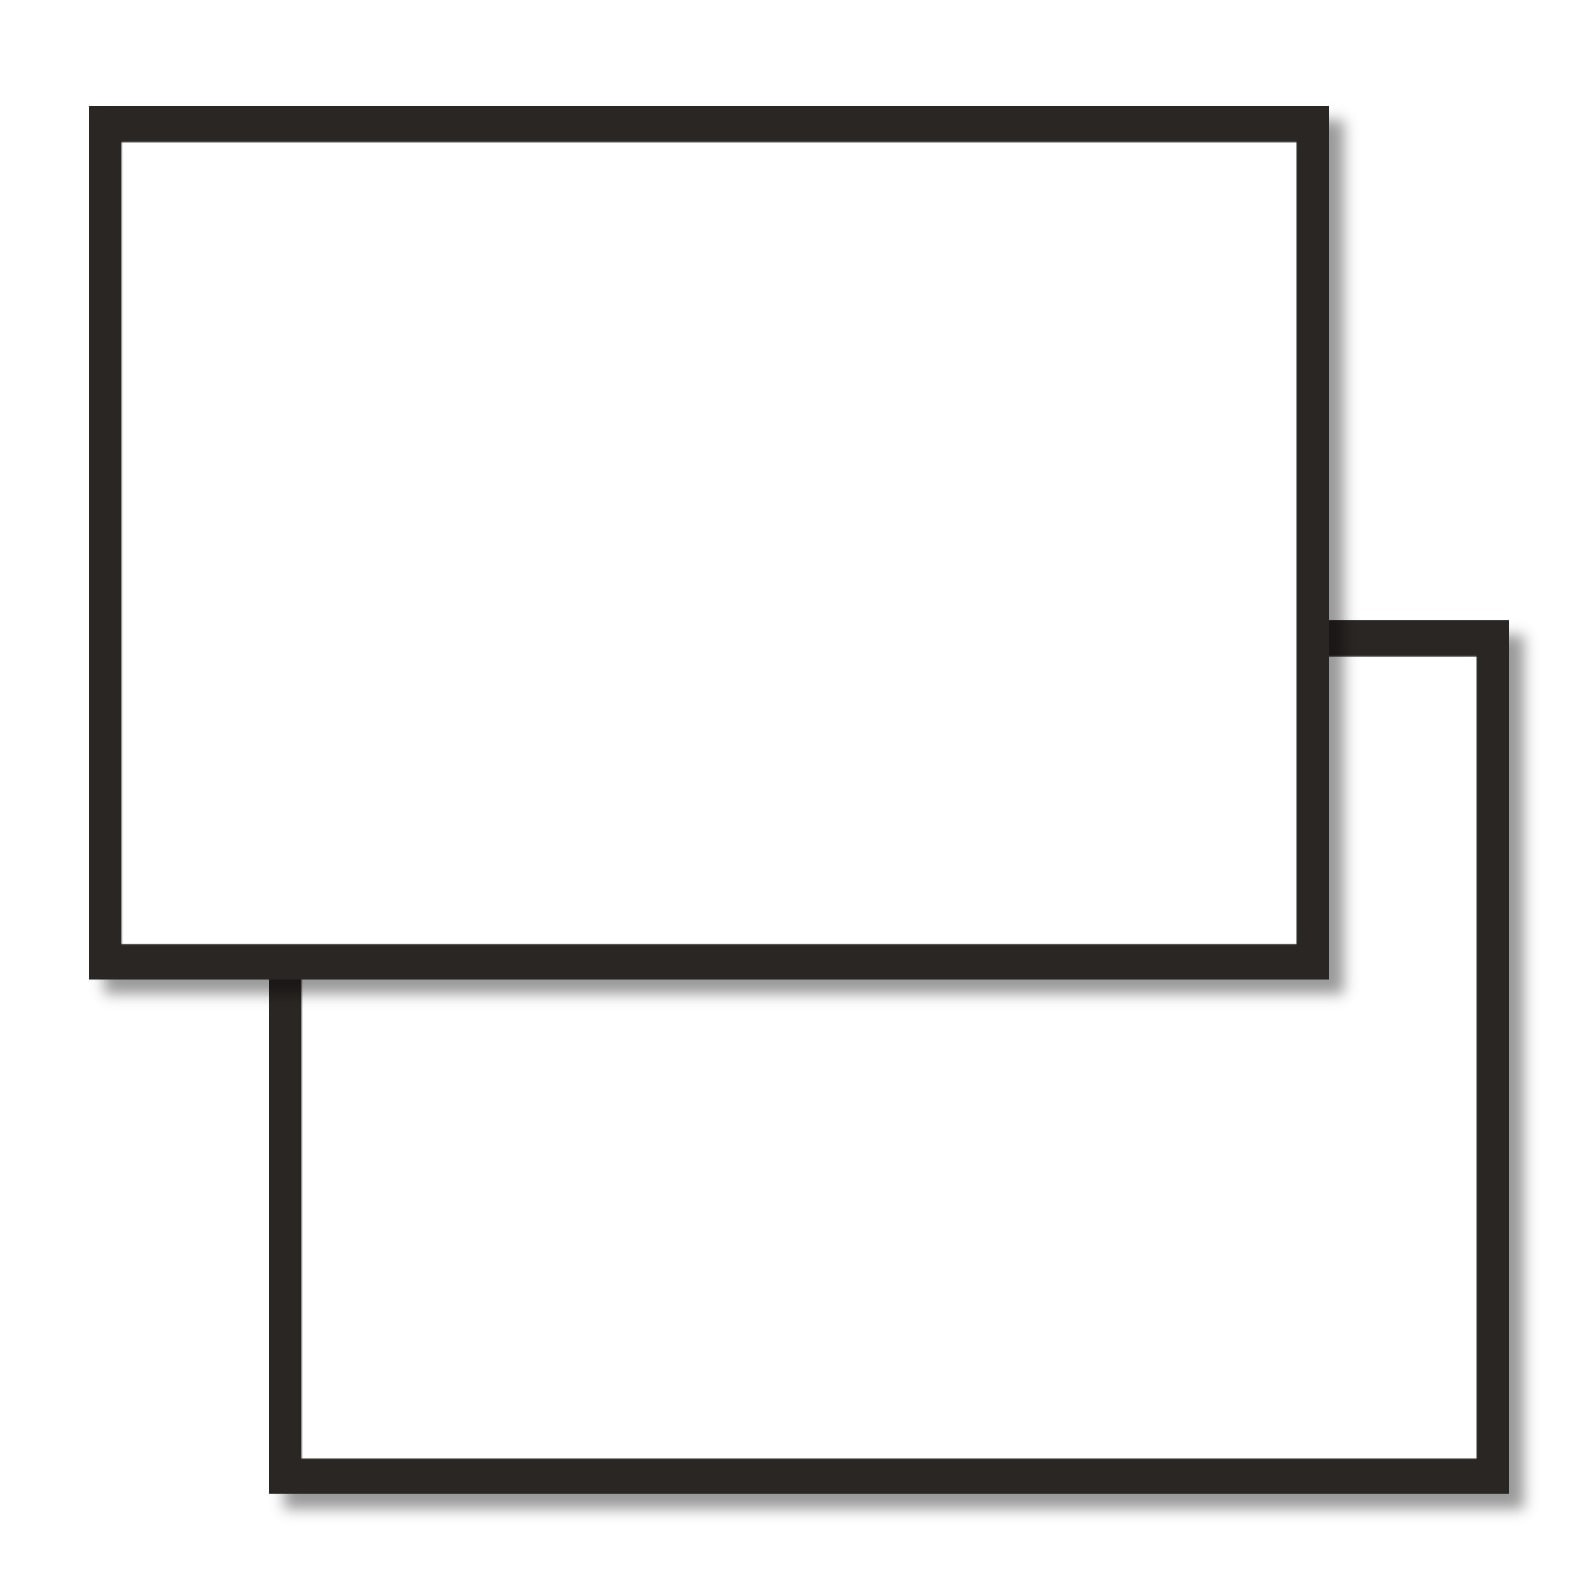 Blank Flashcards With Black Border A6 Flashcards And Stationery